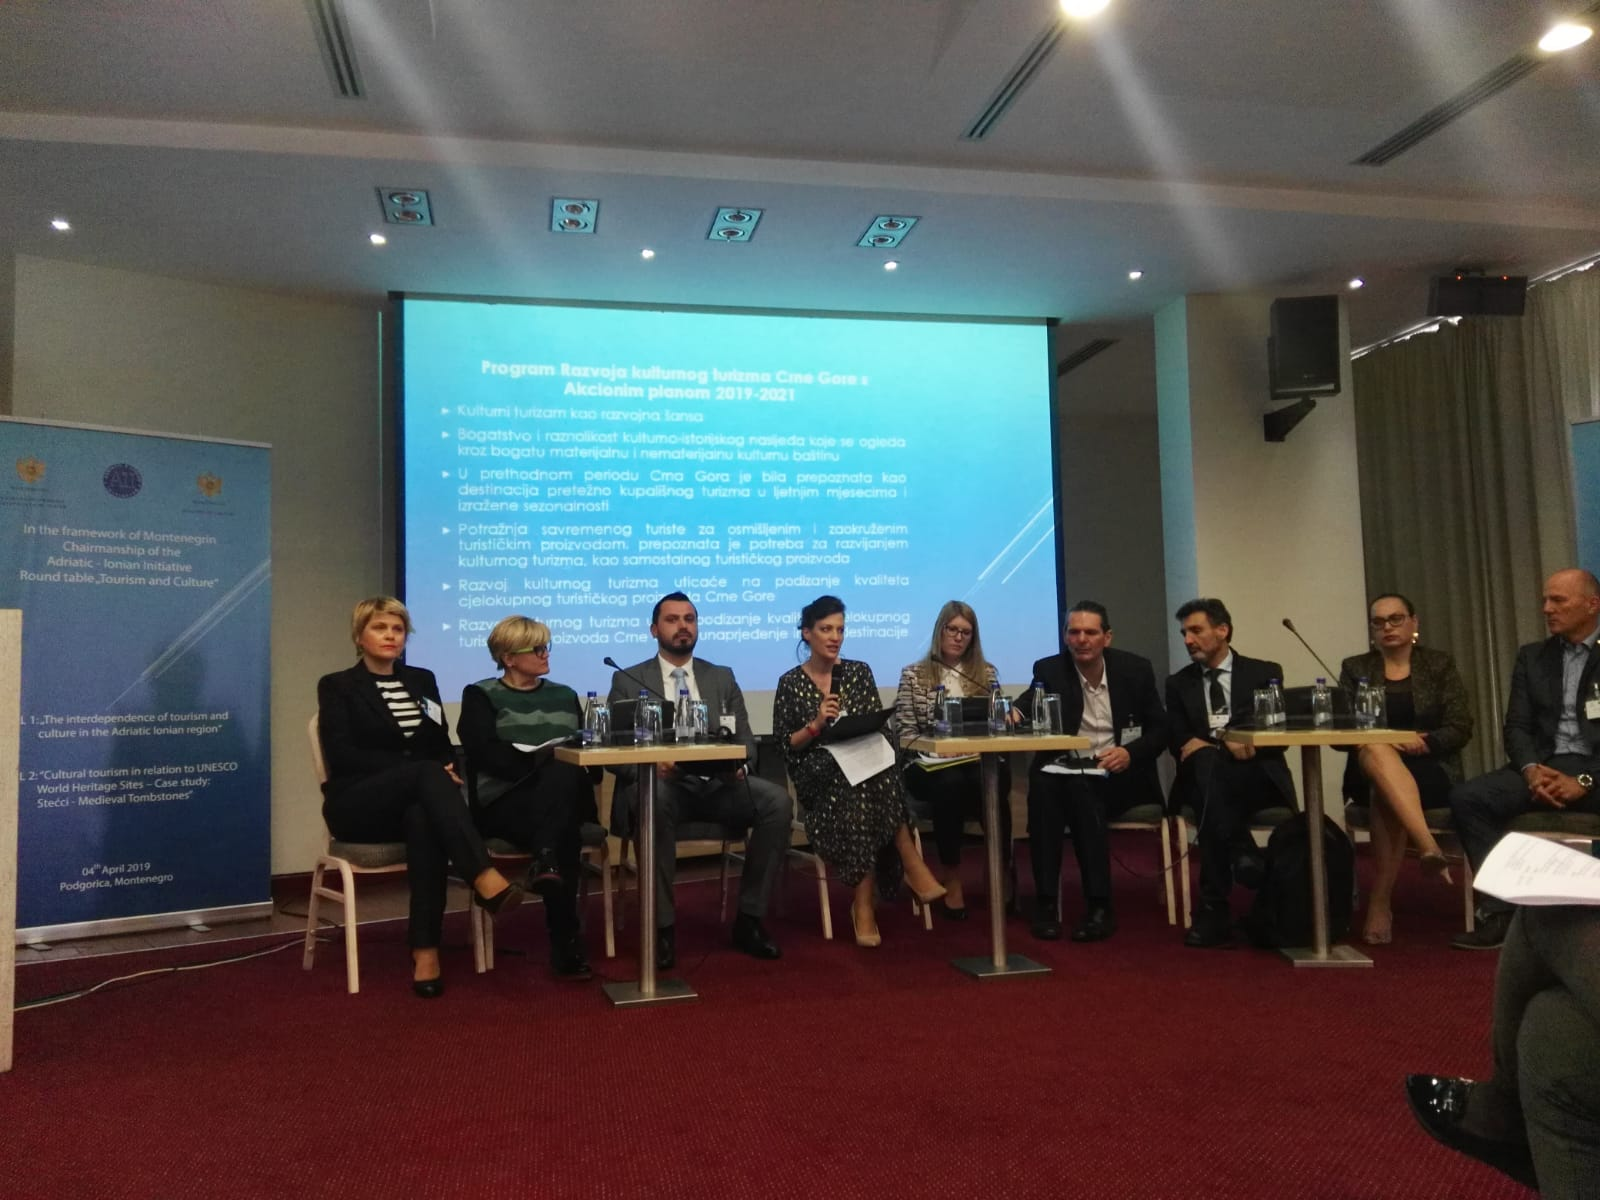 AII ROUND TABLE ON TOURISM AND CULTURE - PODGORICA, 4 APRIL 2019